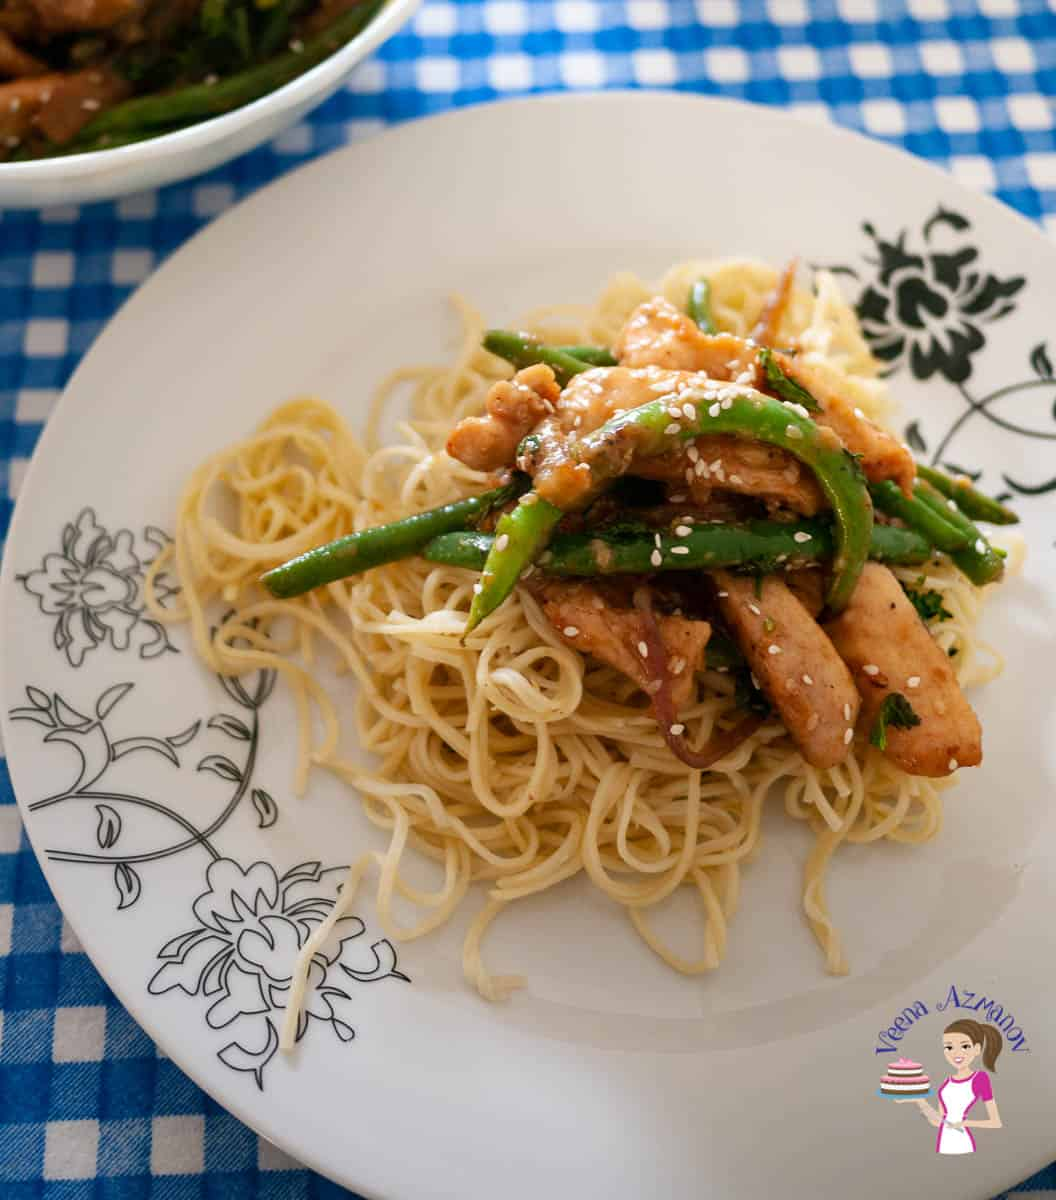 A plate with noodle and stir fry